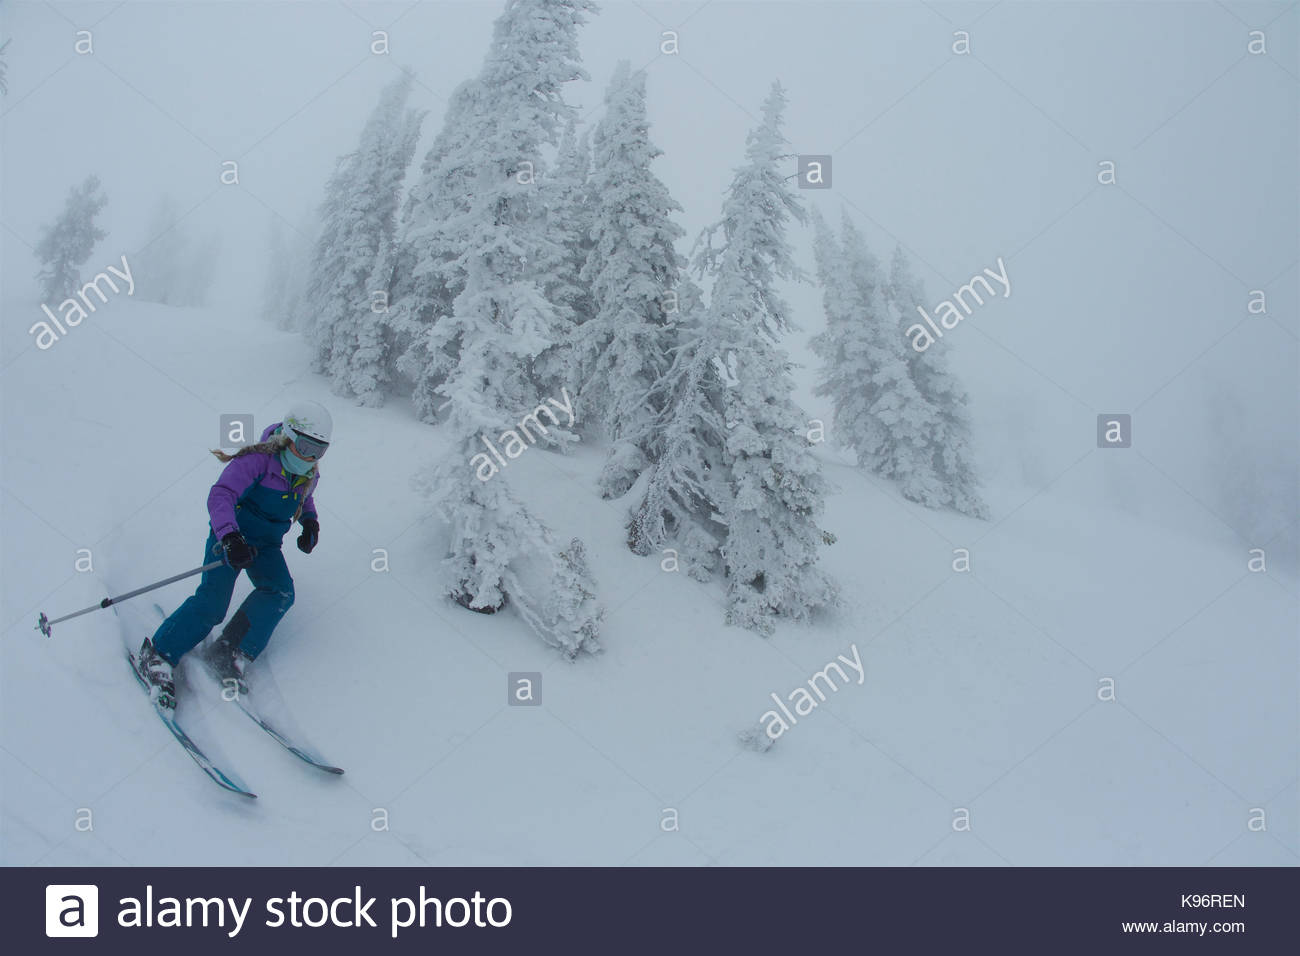 A teen girl skiing in foggy, whiteout conditions near rime covered conifer trees. - Stock Image